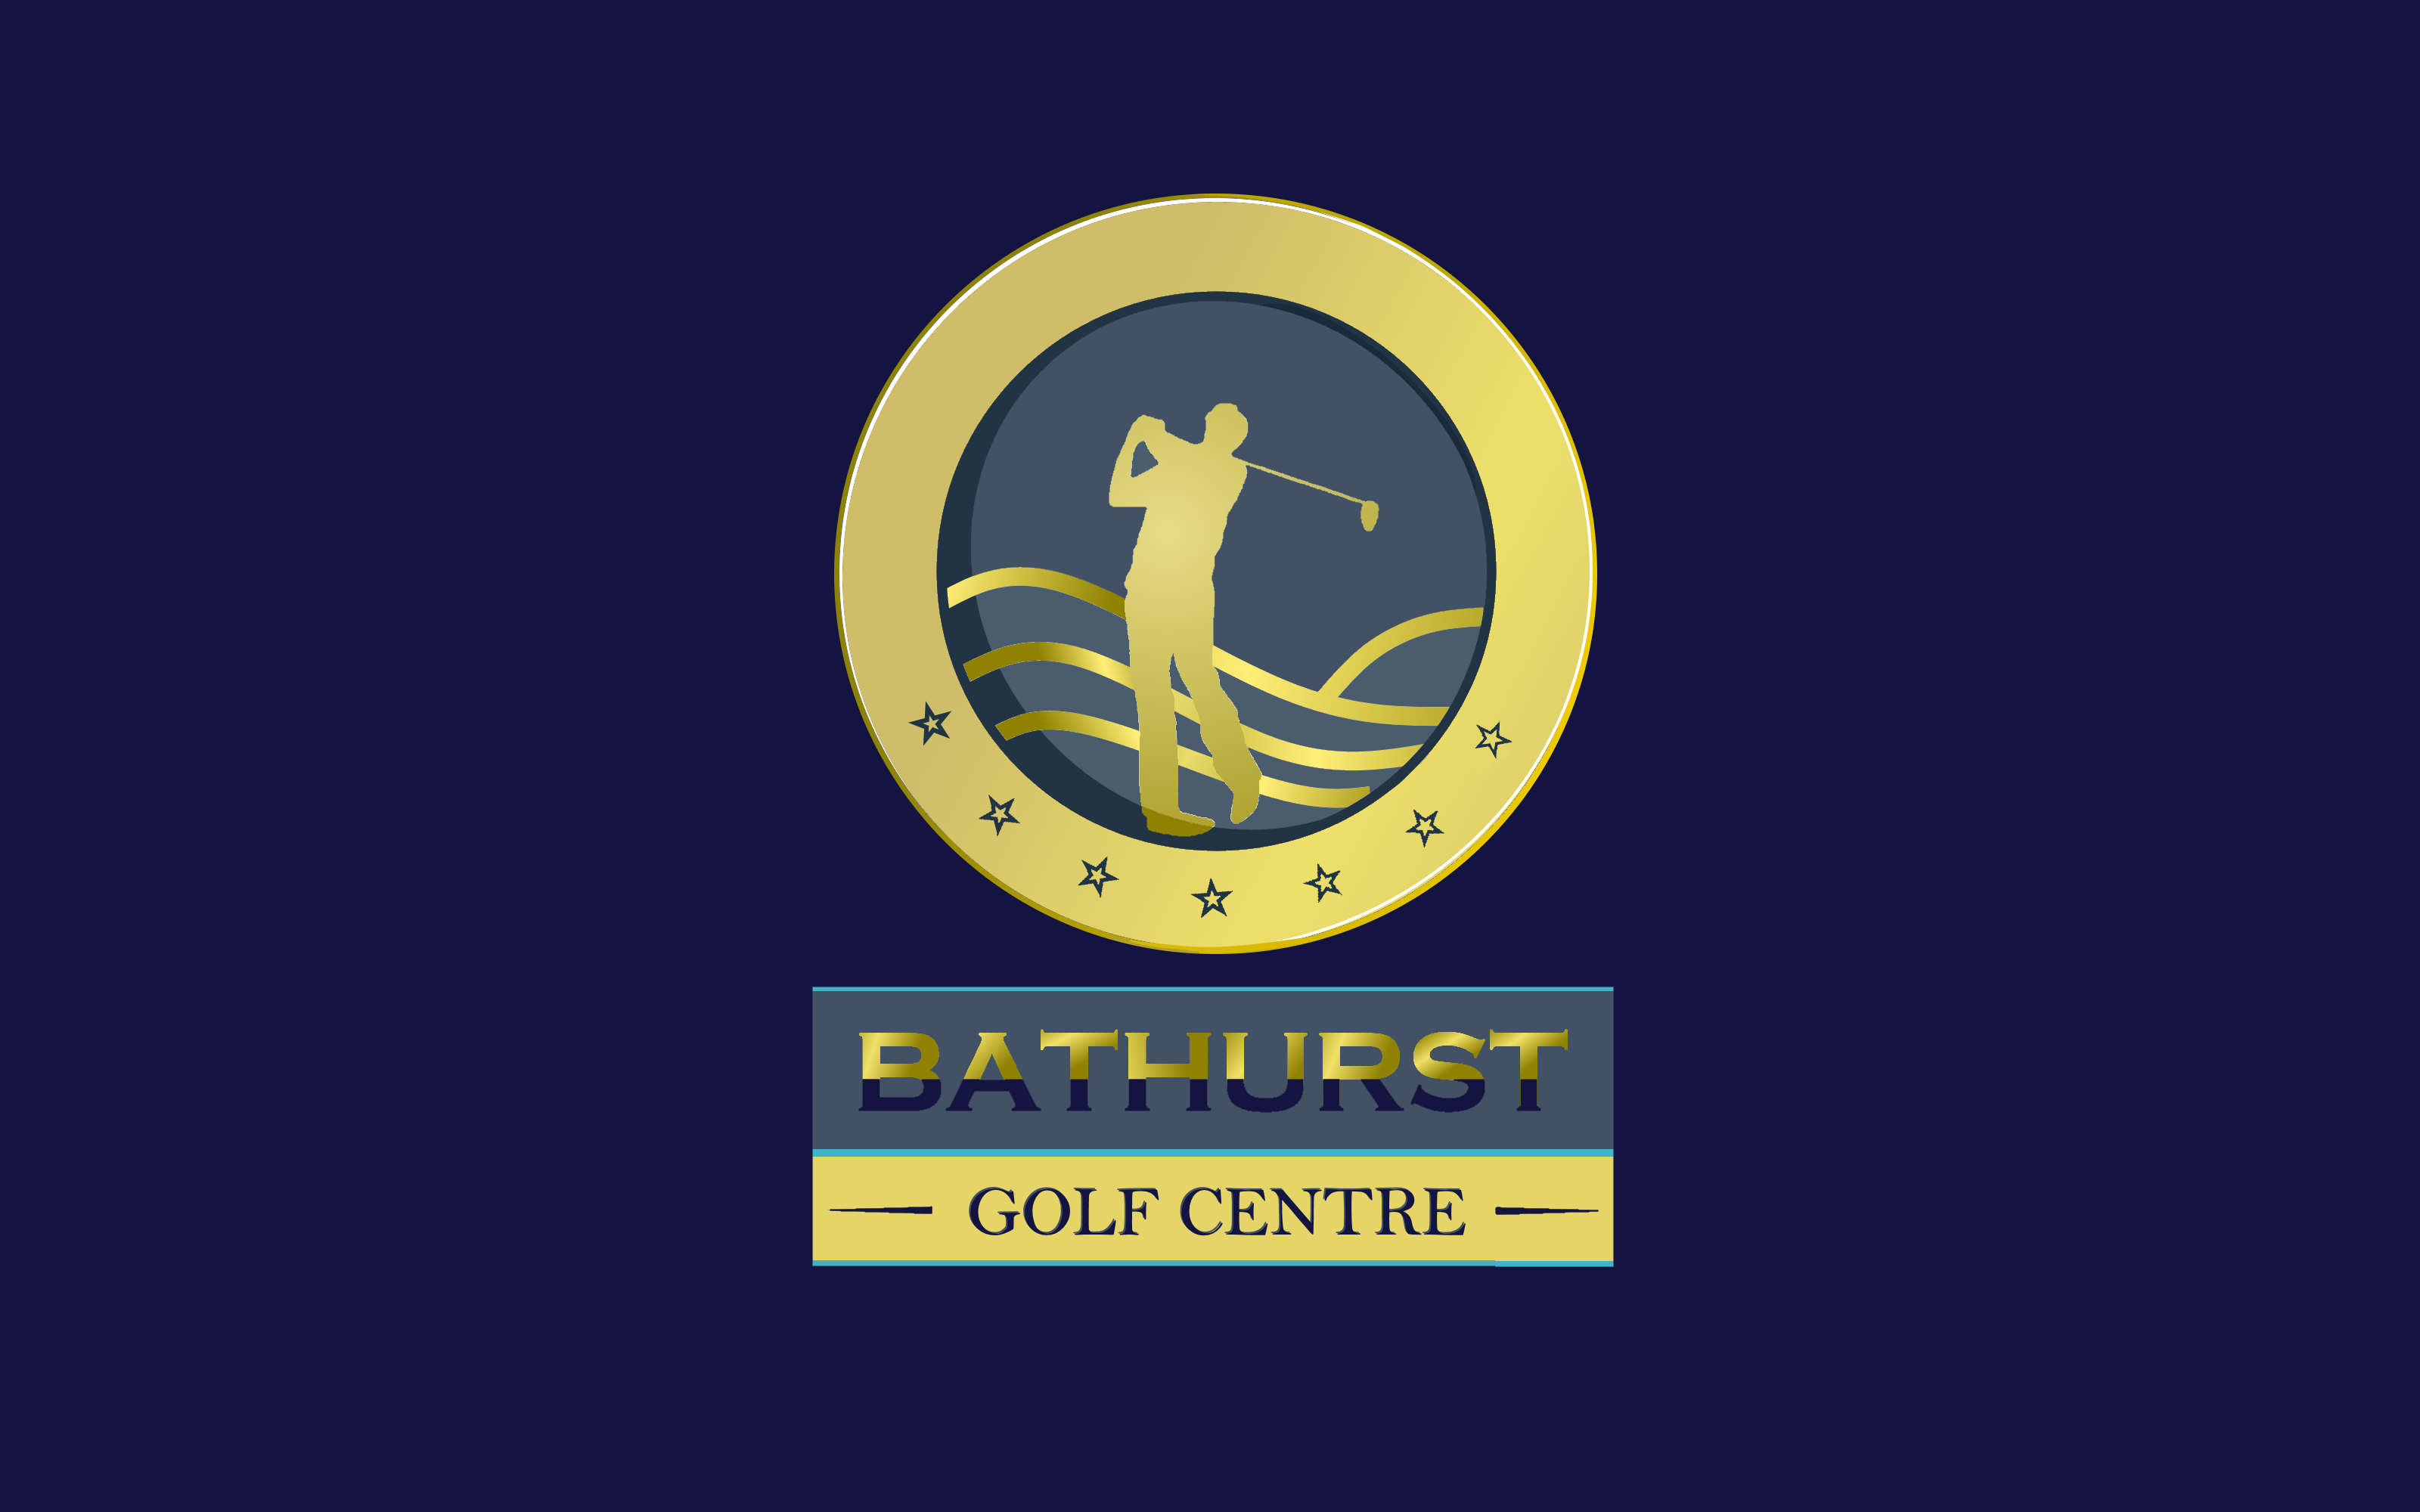 Logo Design by Roberto Bassi - Entry No. 15 in the Logo Design Contest Inspiring Logo Design for Bathurst Golf Centre.